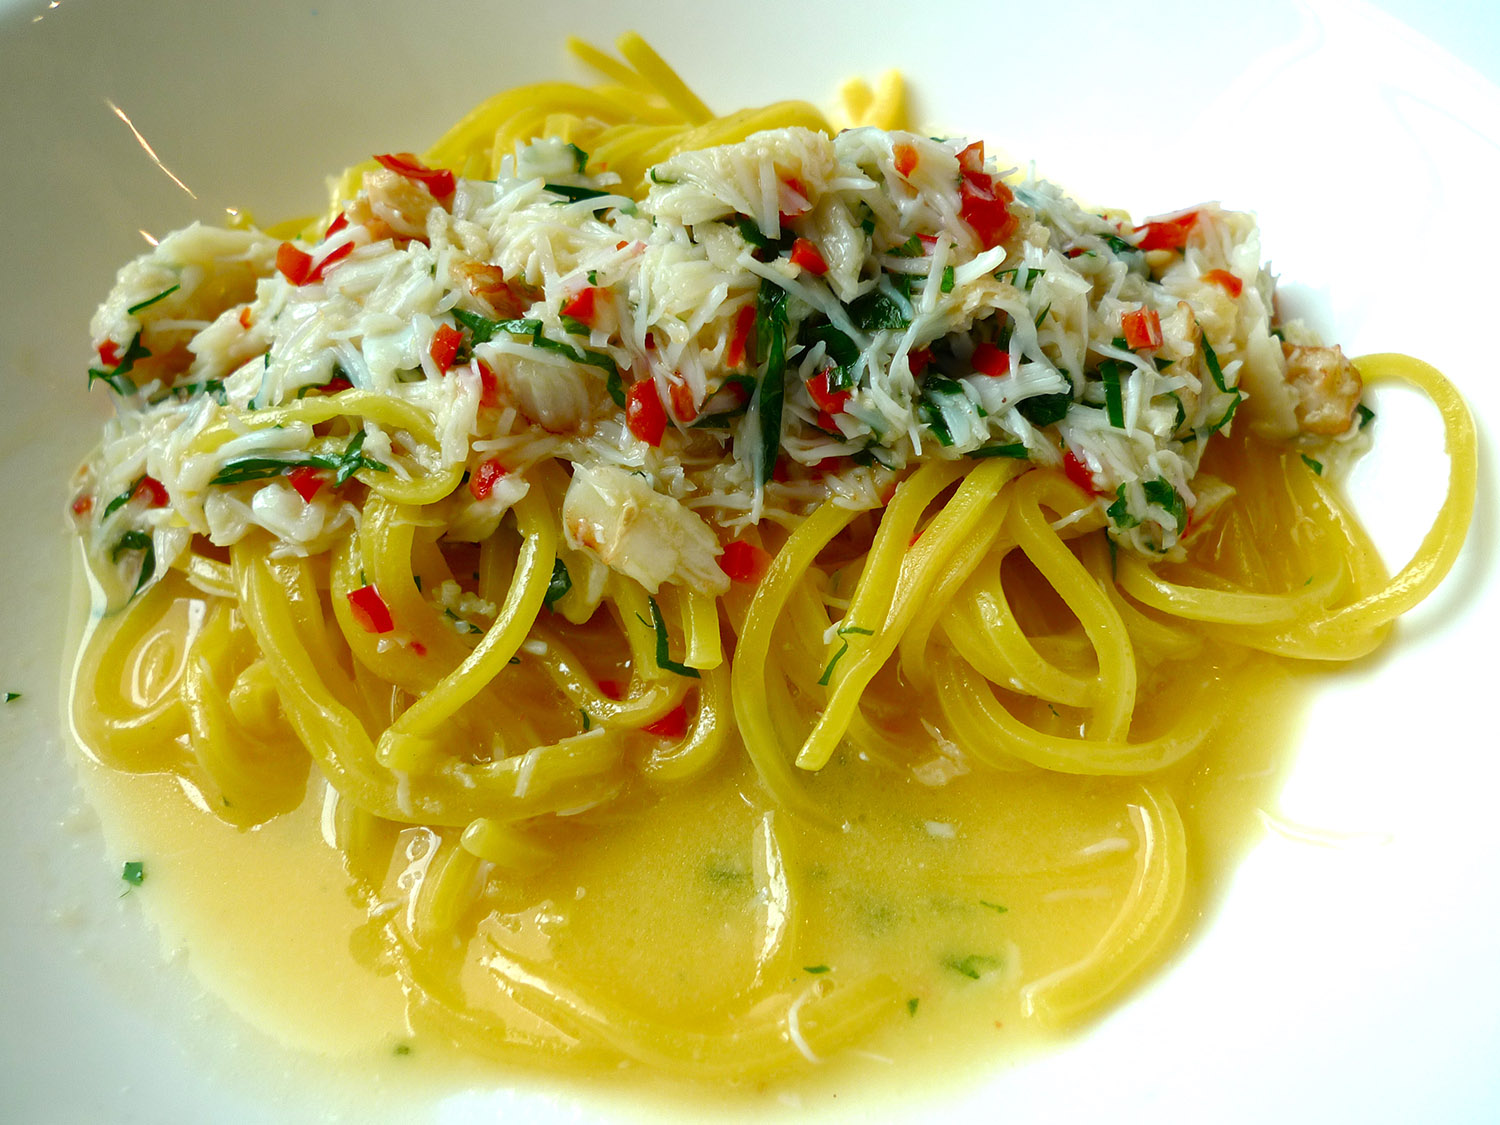 Crab, Chilli, Garlic and Parsley Linguini © Neil Hennessy-Vass